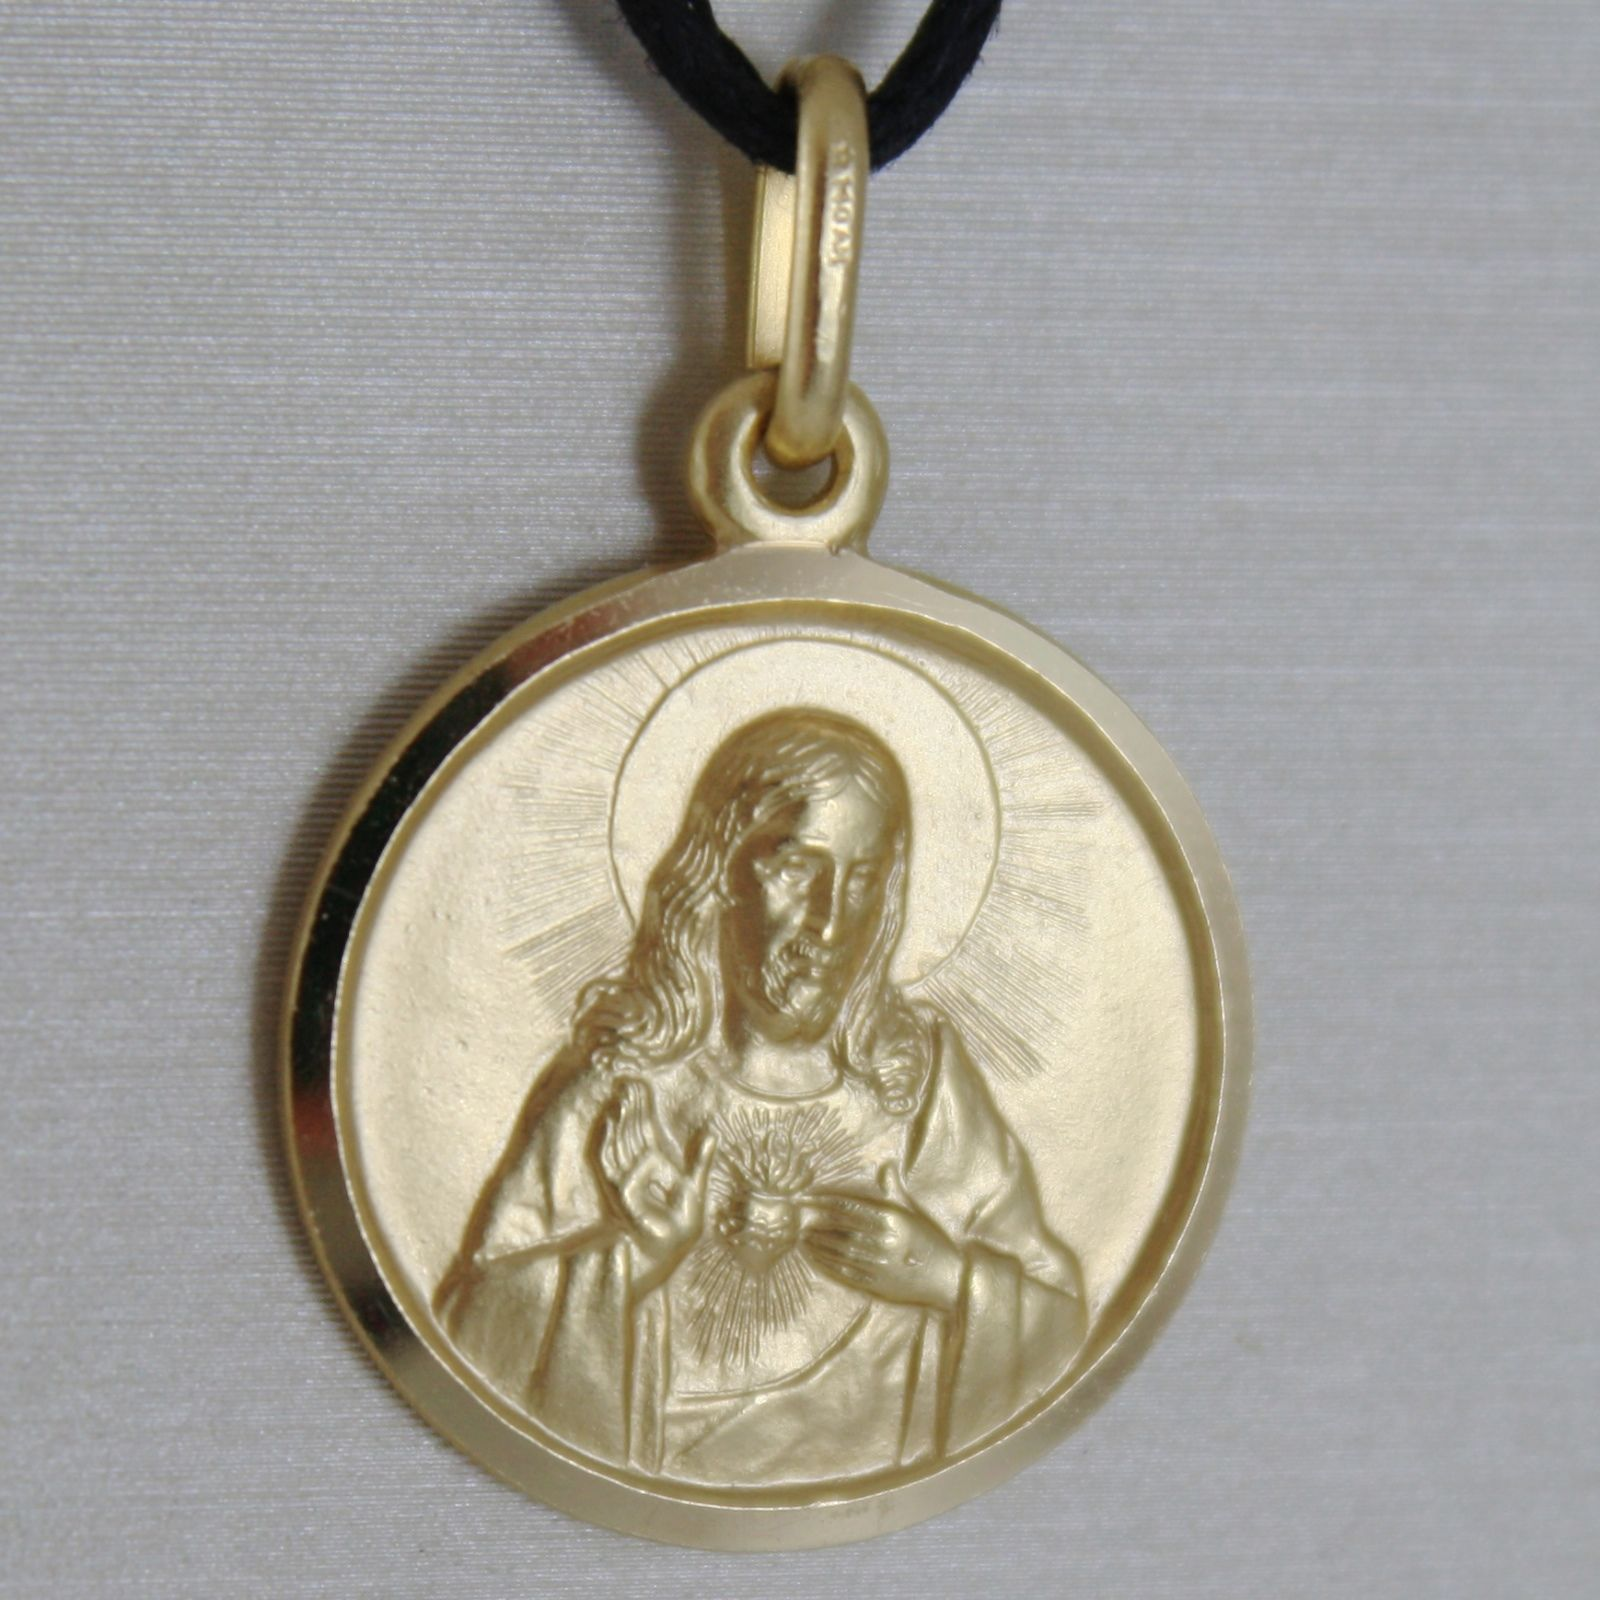 SOLID 18K YELLOW GOLD SACRED HEART OF JESUS 17 MM ROUND MEDAL, MADE IN ITALY